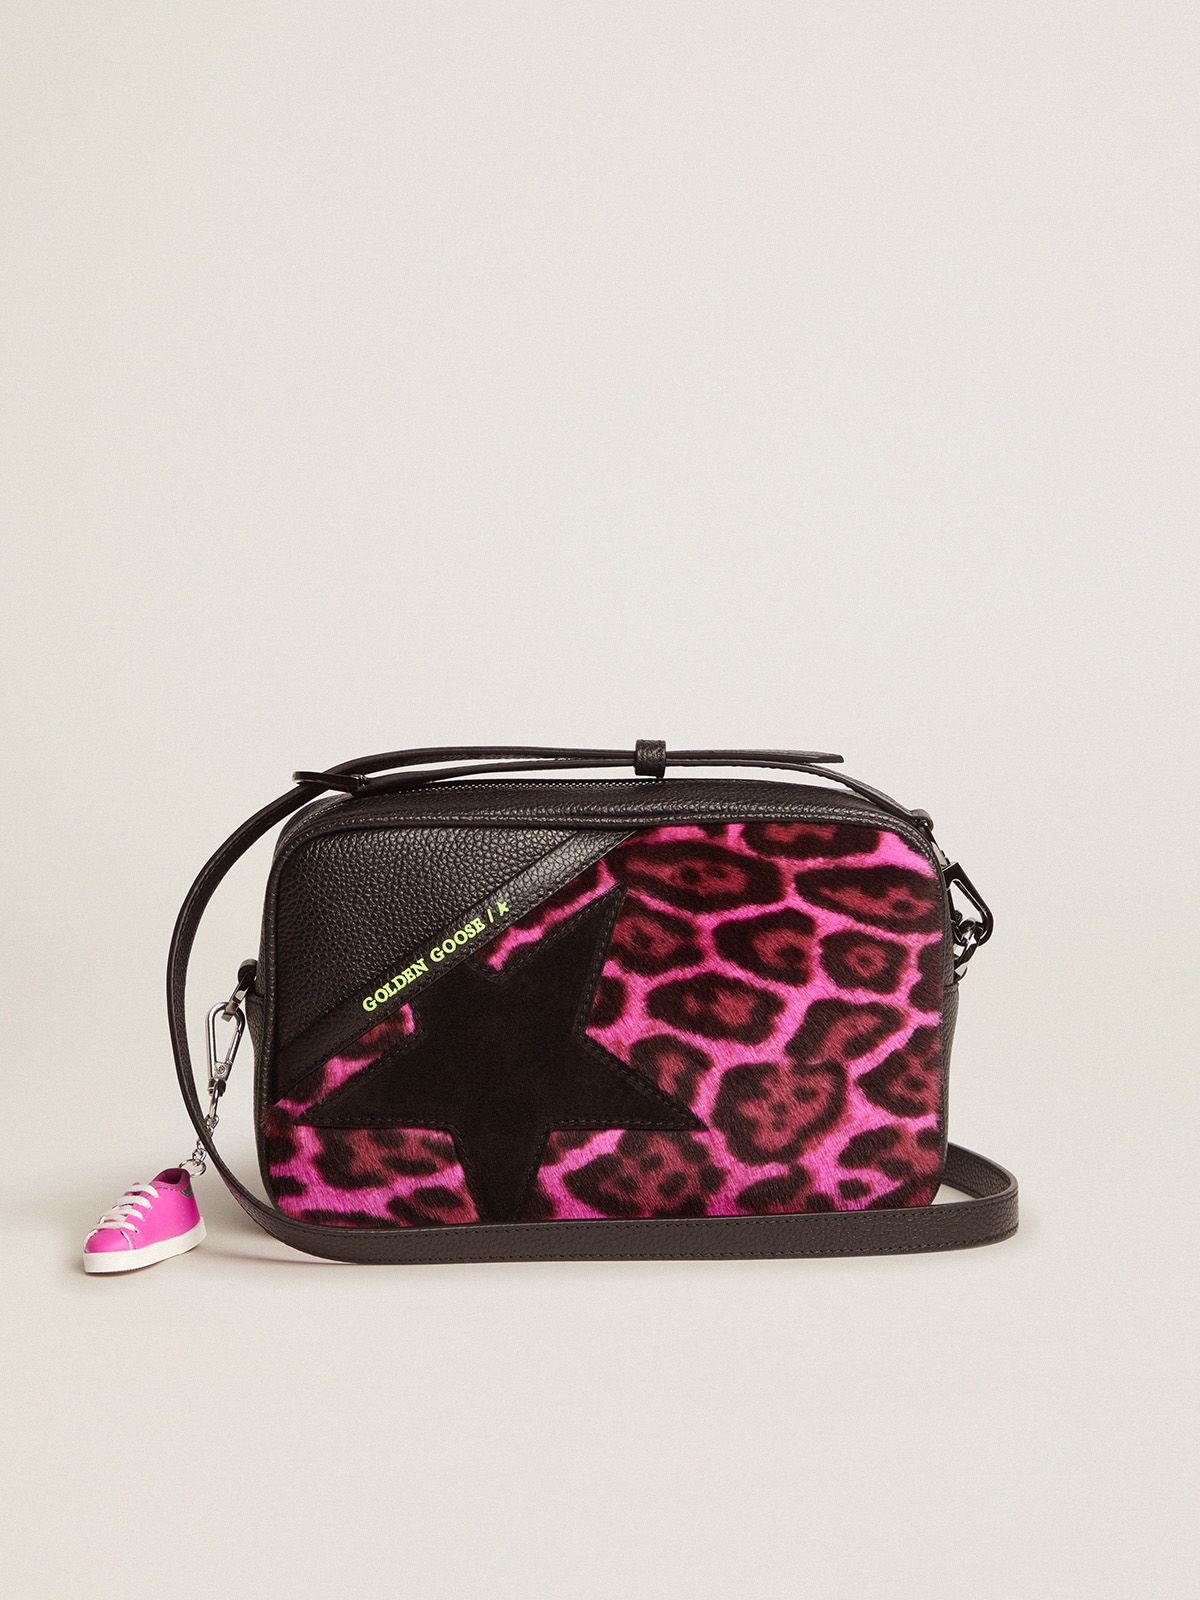 Star Bag made of fuchsia leopard-print pony skin